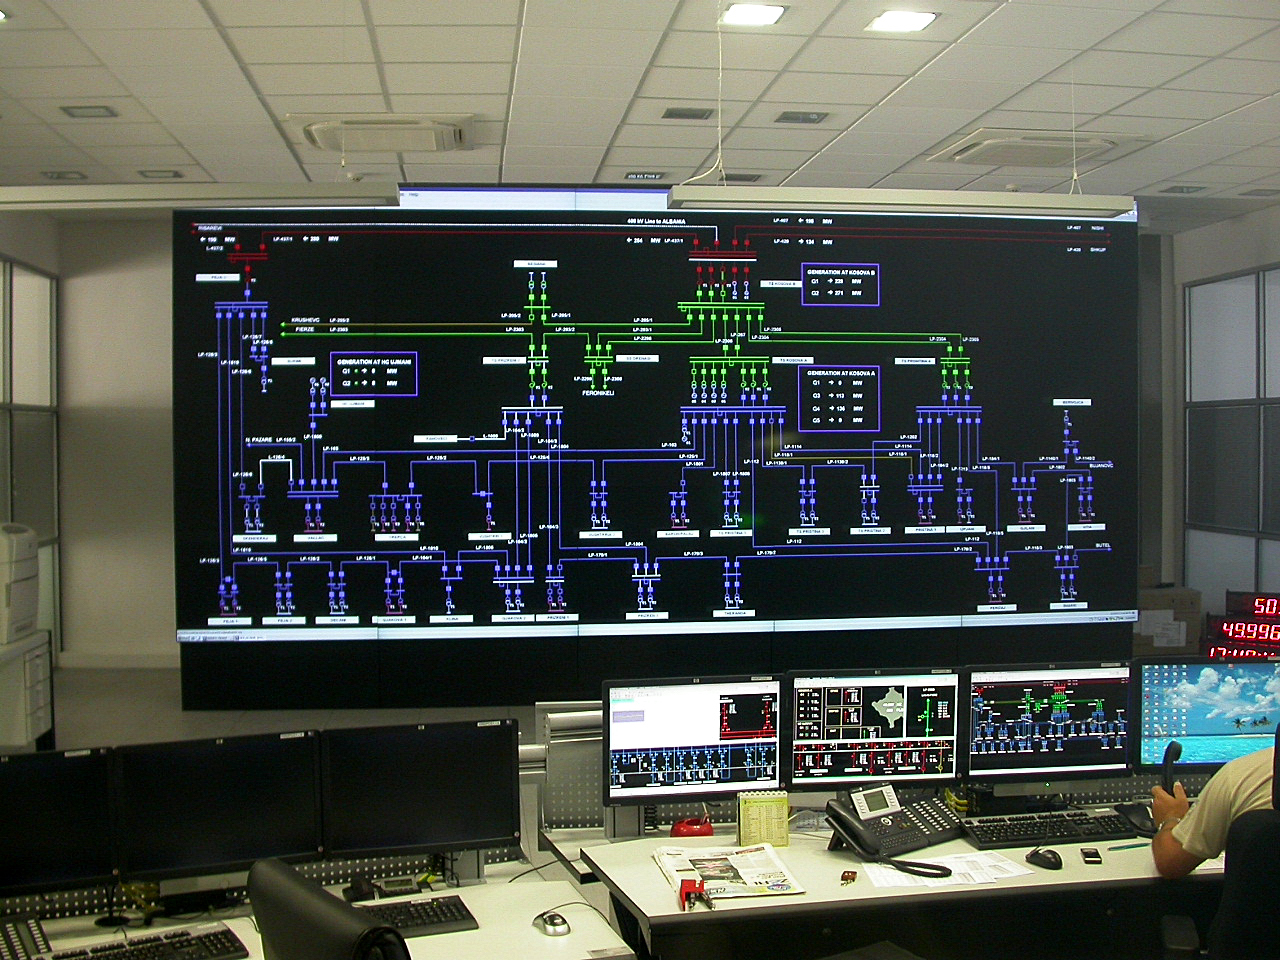 Design and Installation of SCADA System in KOSTT